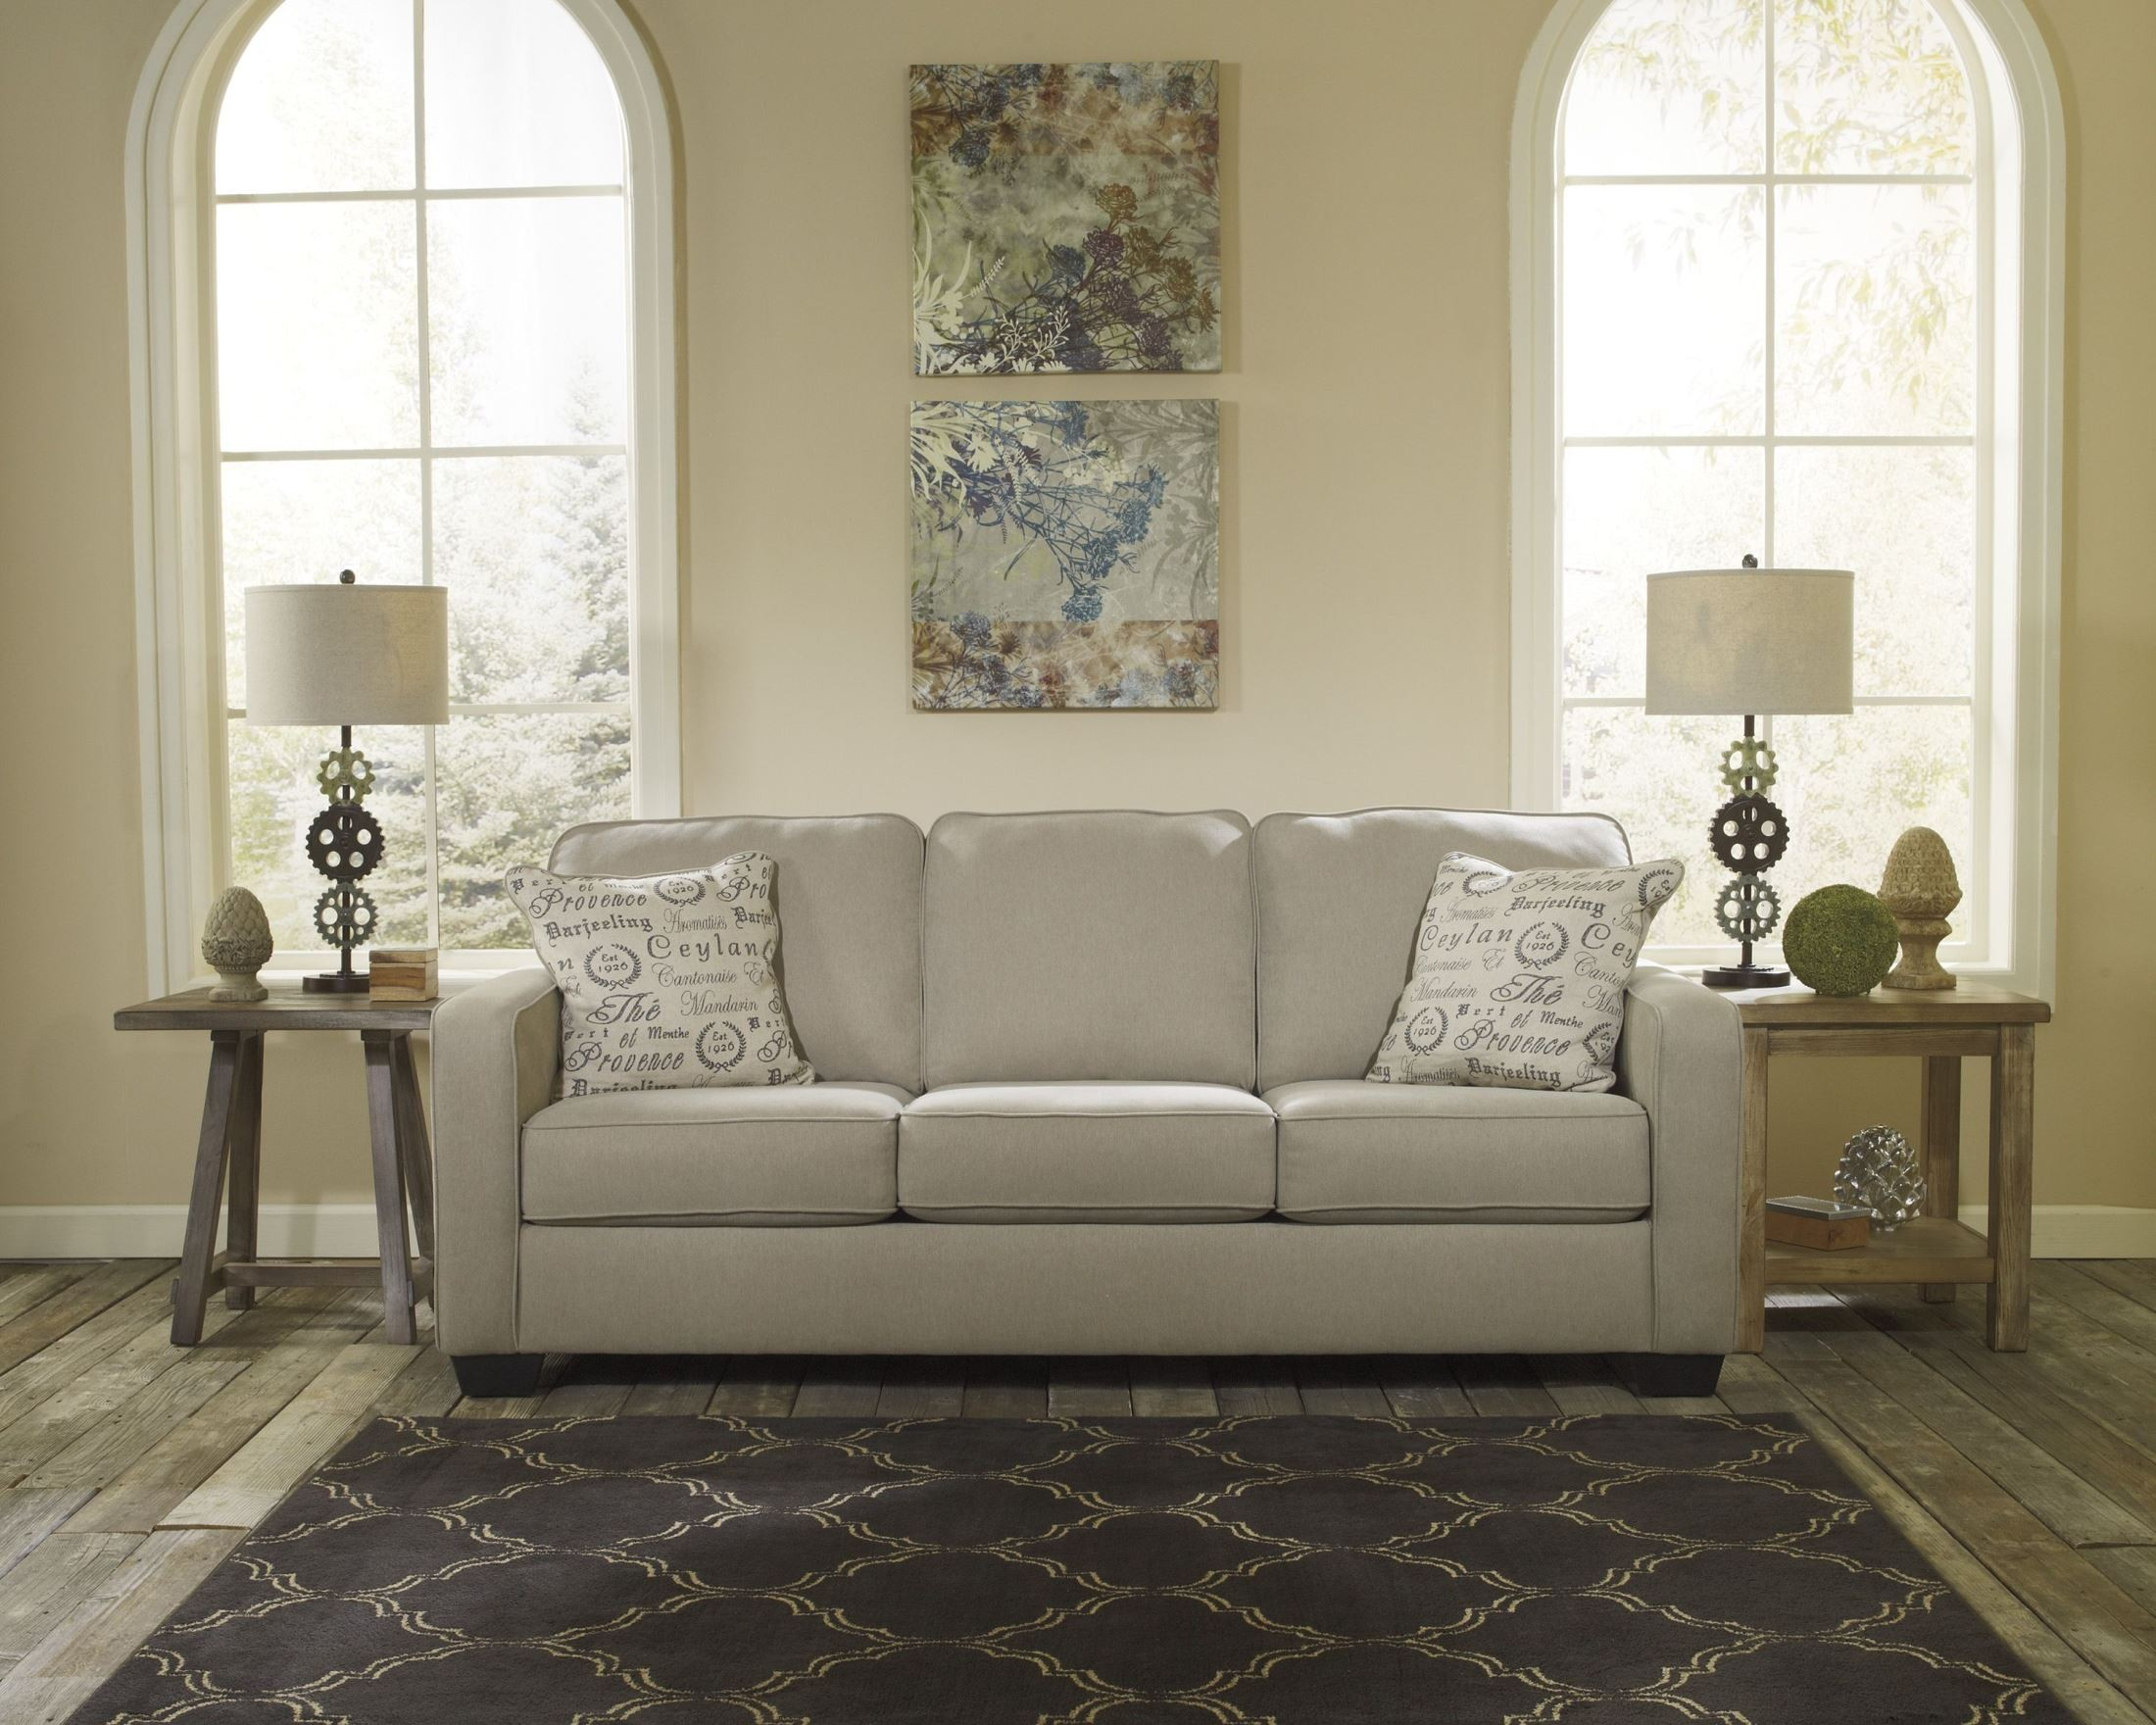 Ashley Alenya Queen Sleeper Sofa picture on alenya quartz furniture set with Ashley Alenya Queen Sleeper Sofa, sofa eedb4f98fb335bc9fad732d6be17d0bd